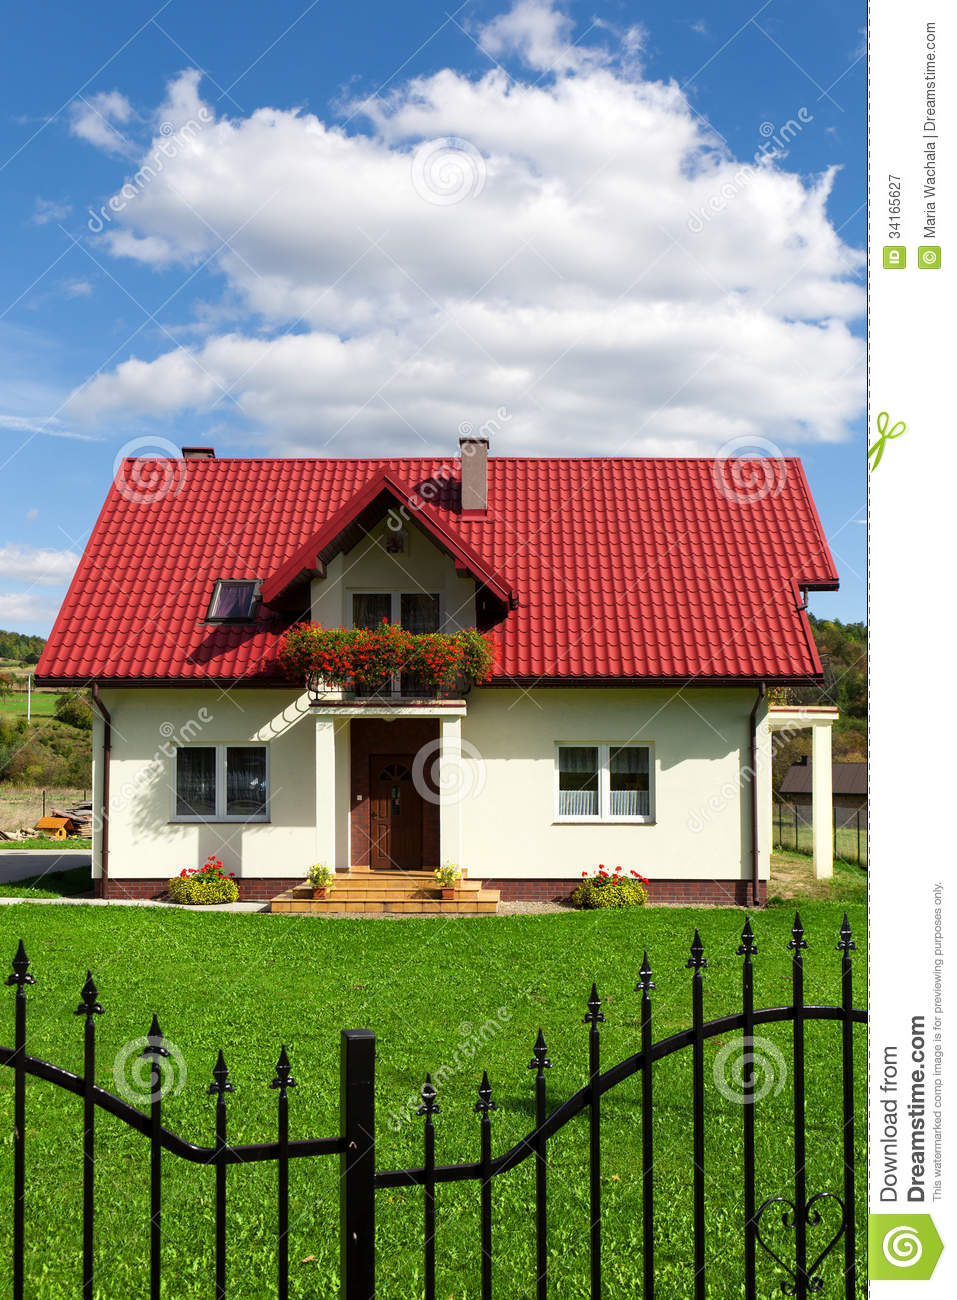 Single family house royalty free stock photography image 34165627 - Houses attic families children ...